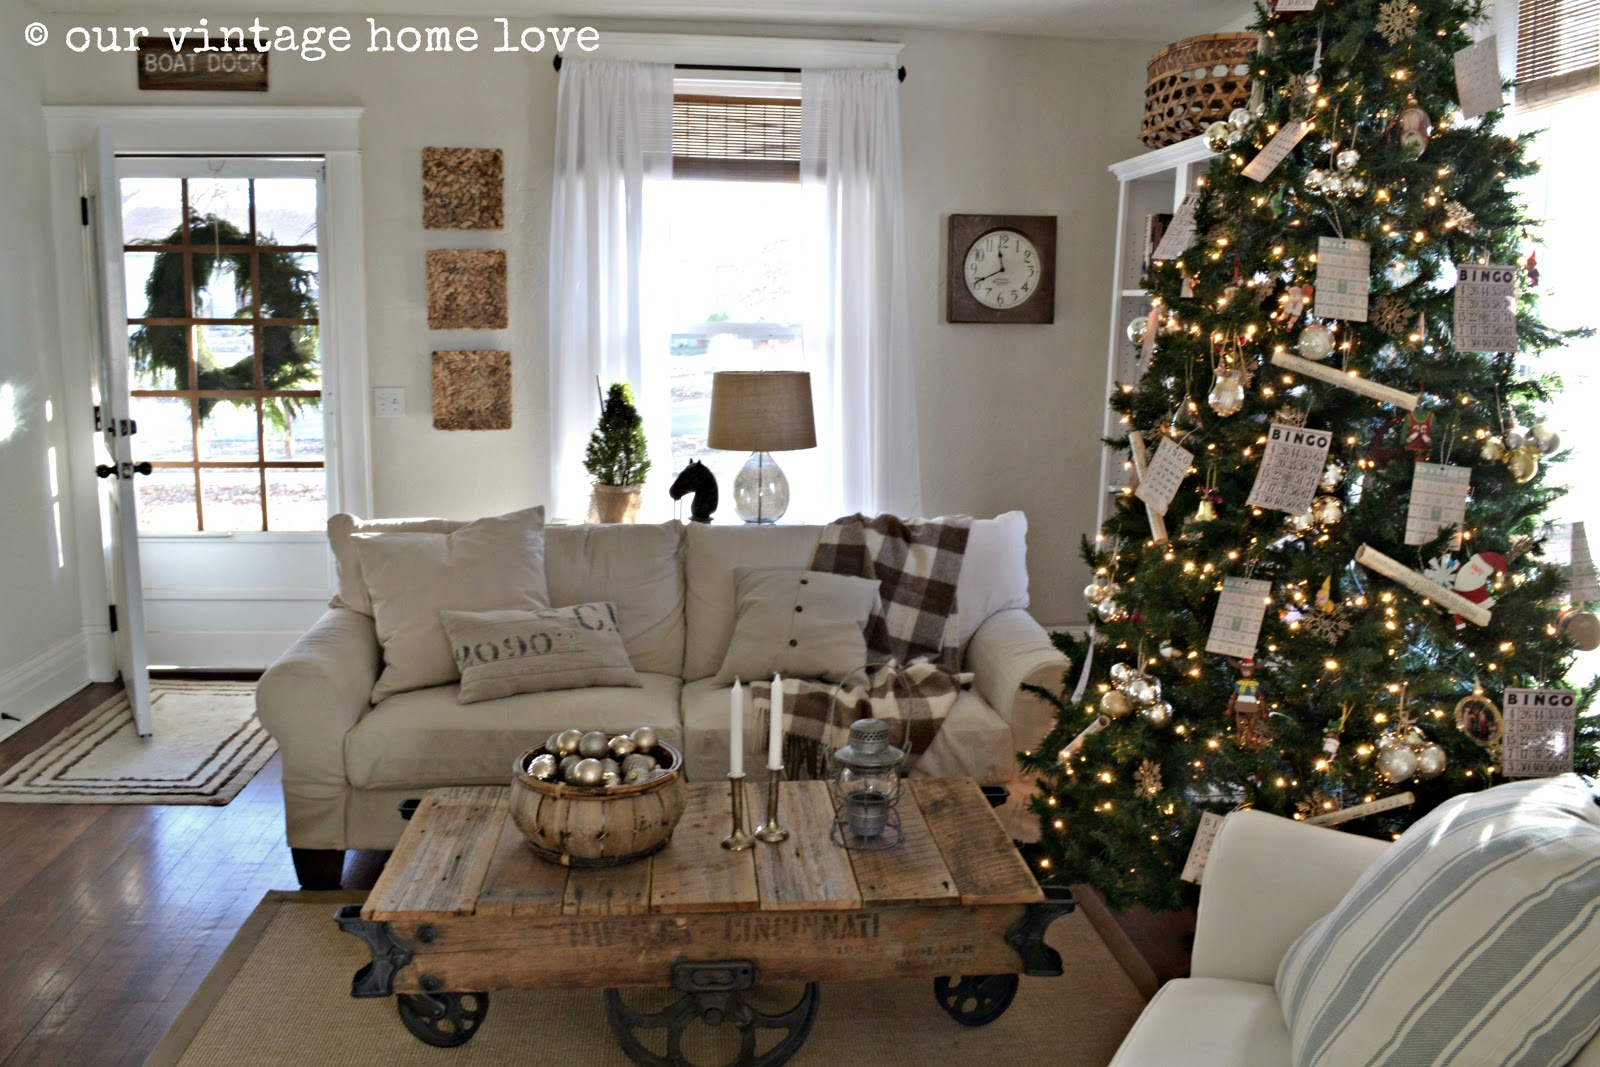 Home Decor Ideas Vintage Home Love 2012 Christmas Decor Ideas